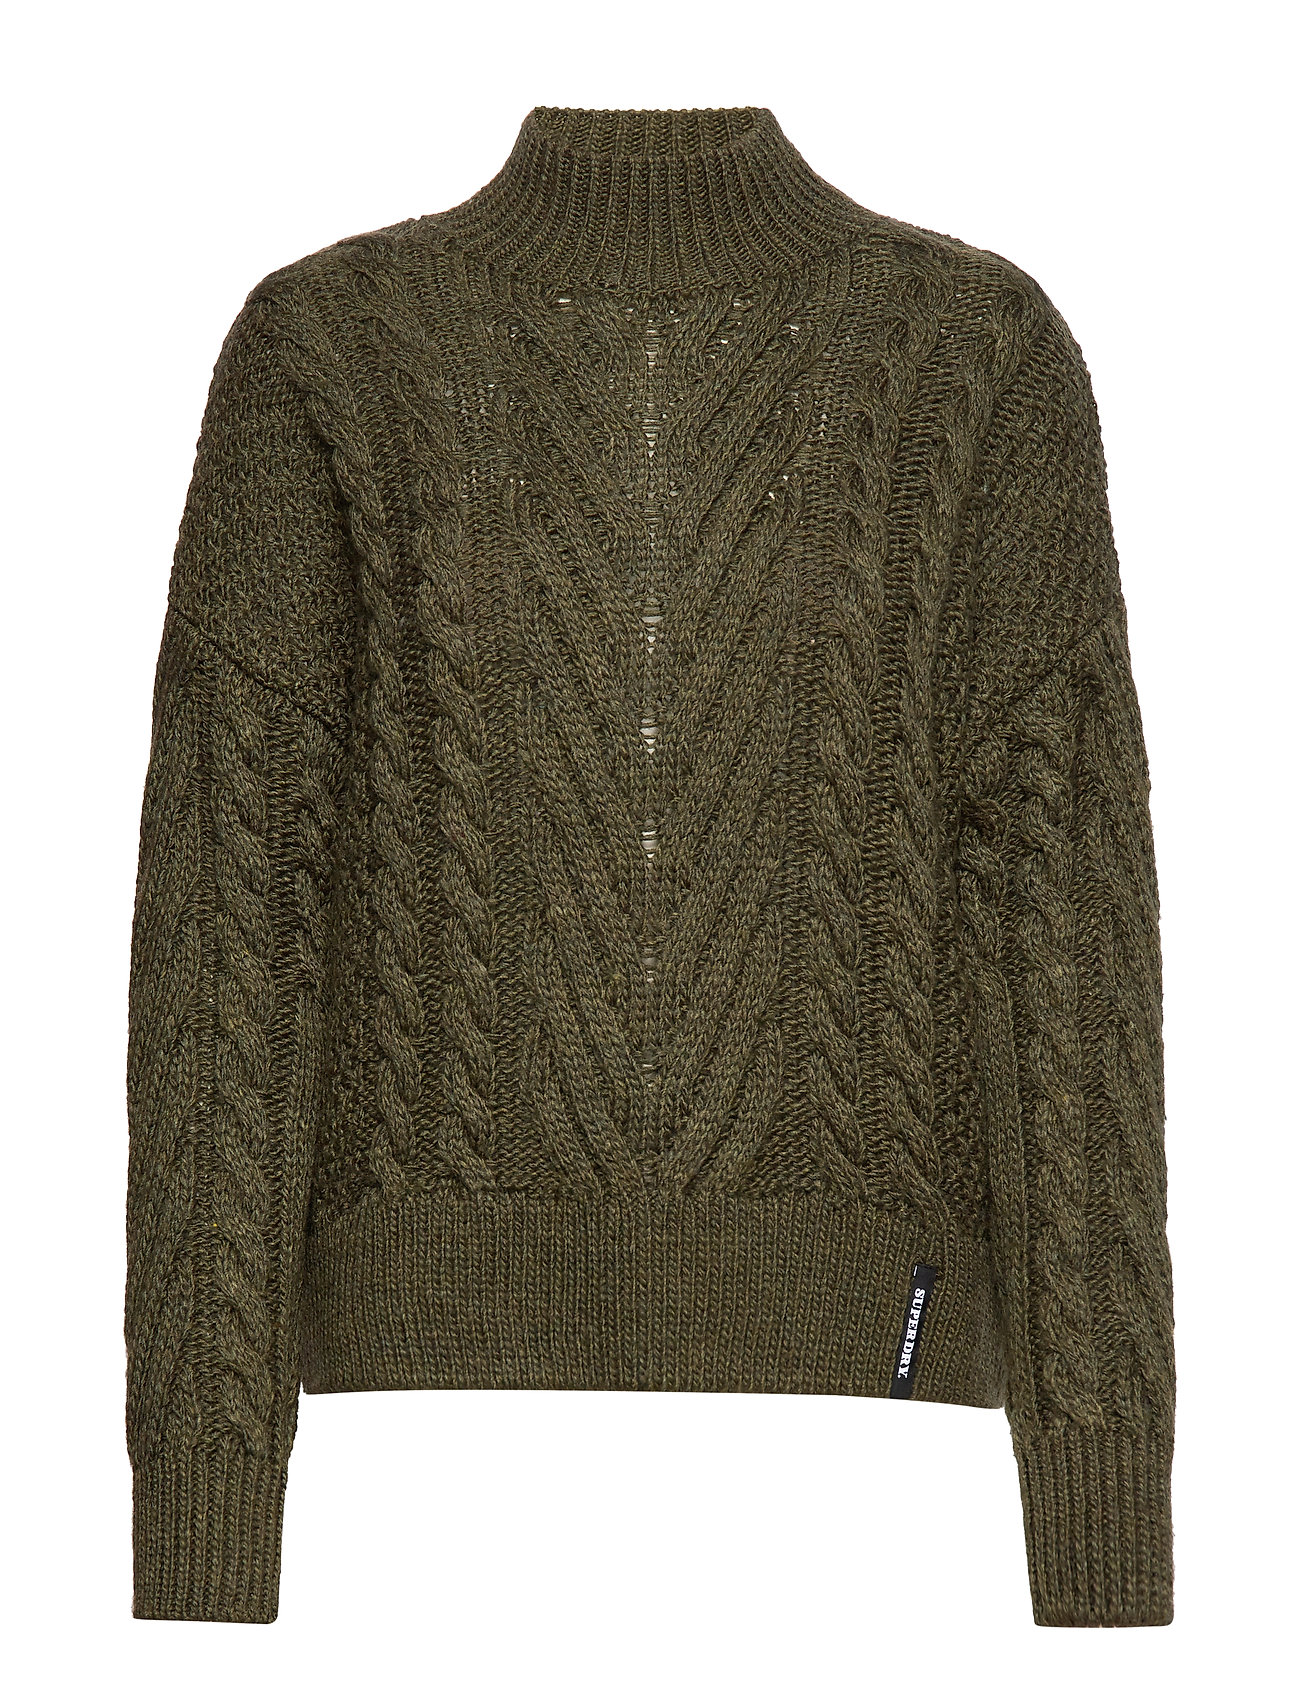 Superdry DALLAS CHUNKY CABLE KNIT - ARMY KHAKI